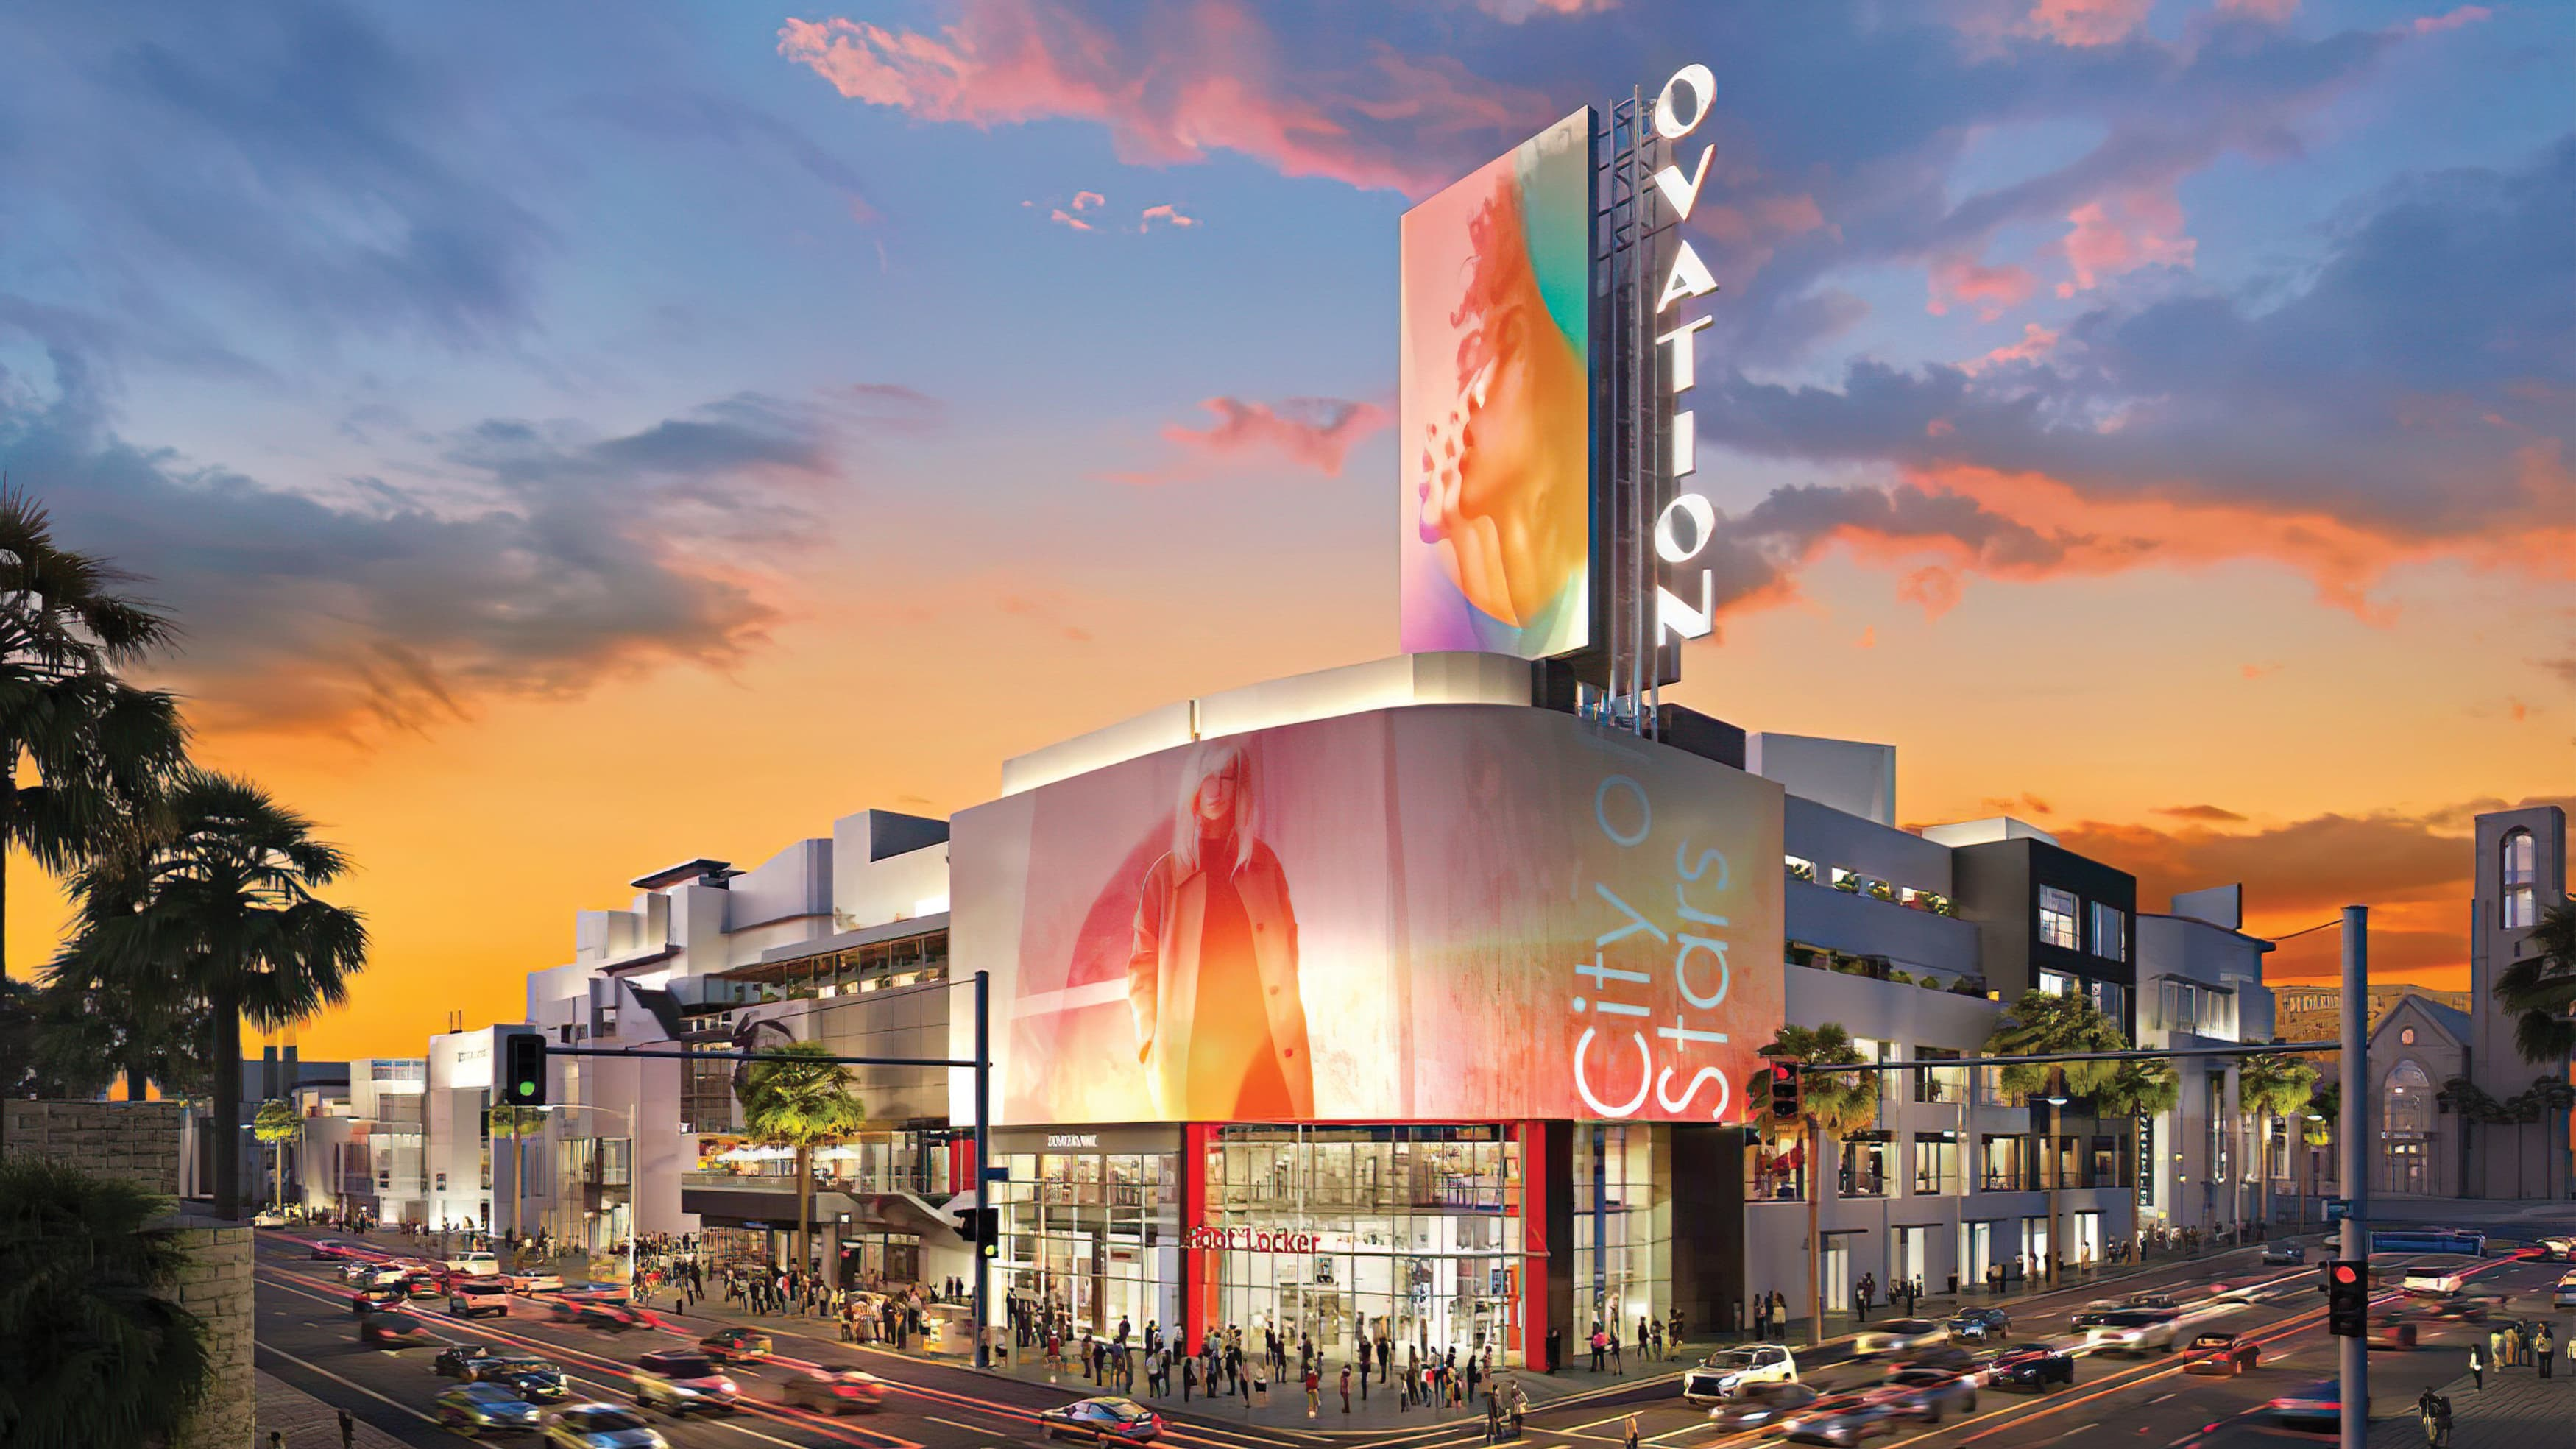 Architectural rendering of Ovation Hollywood project located in Los Angeles.